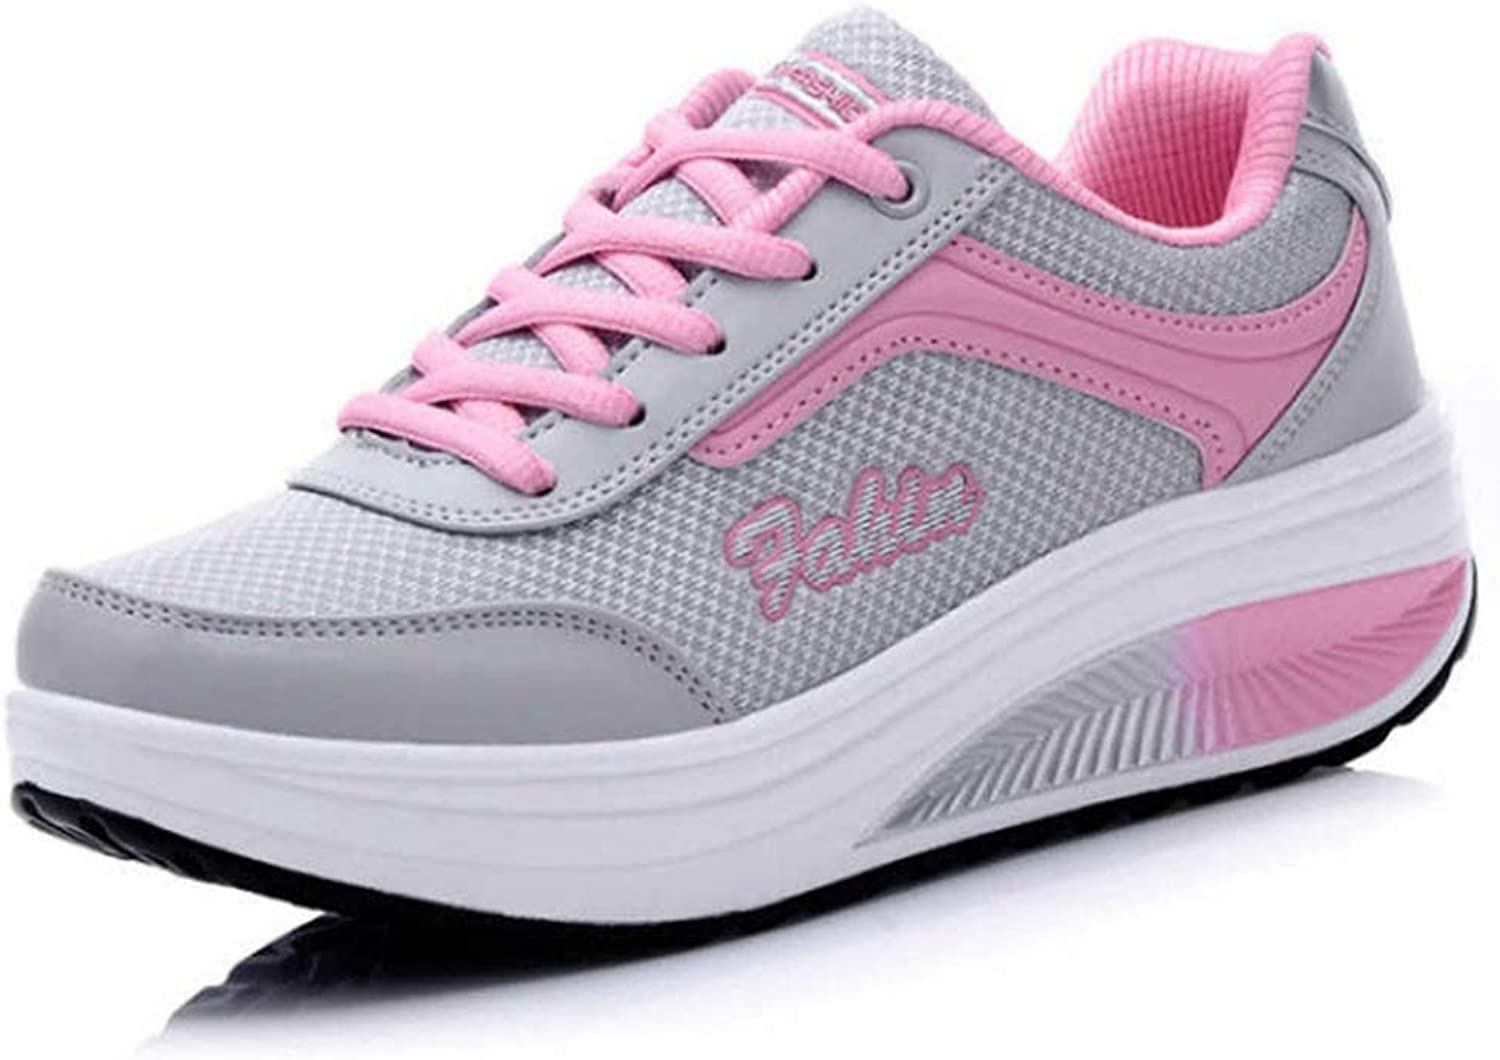 ASO-SLING Women's Air Mesh Wedge Sneakers Height Increasing Platform Casual Lace Up Outdoor Fitness Sport Walking shoes